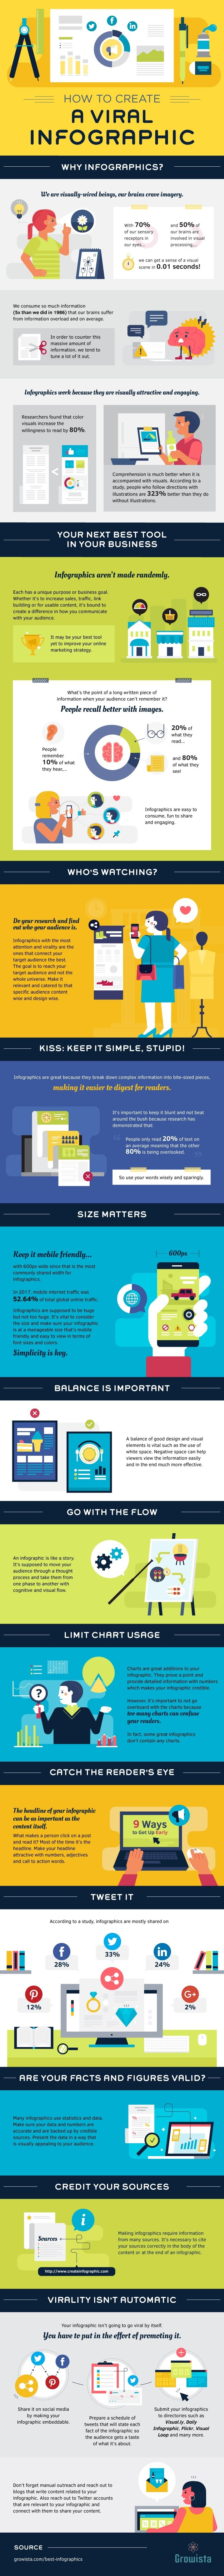 Infographic: Creating Viral Infographics